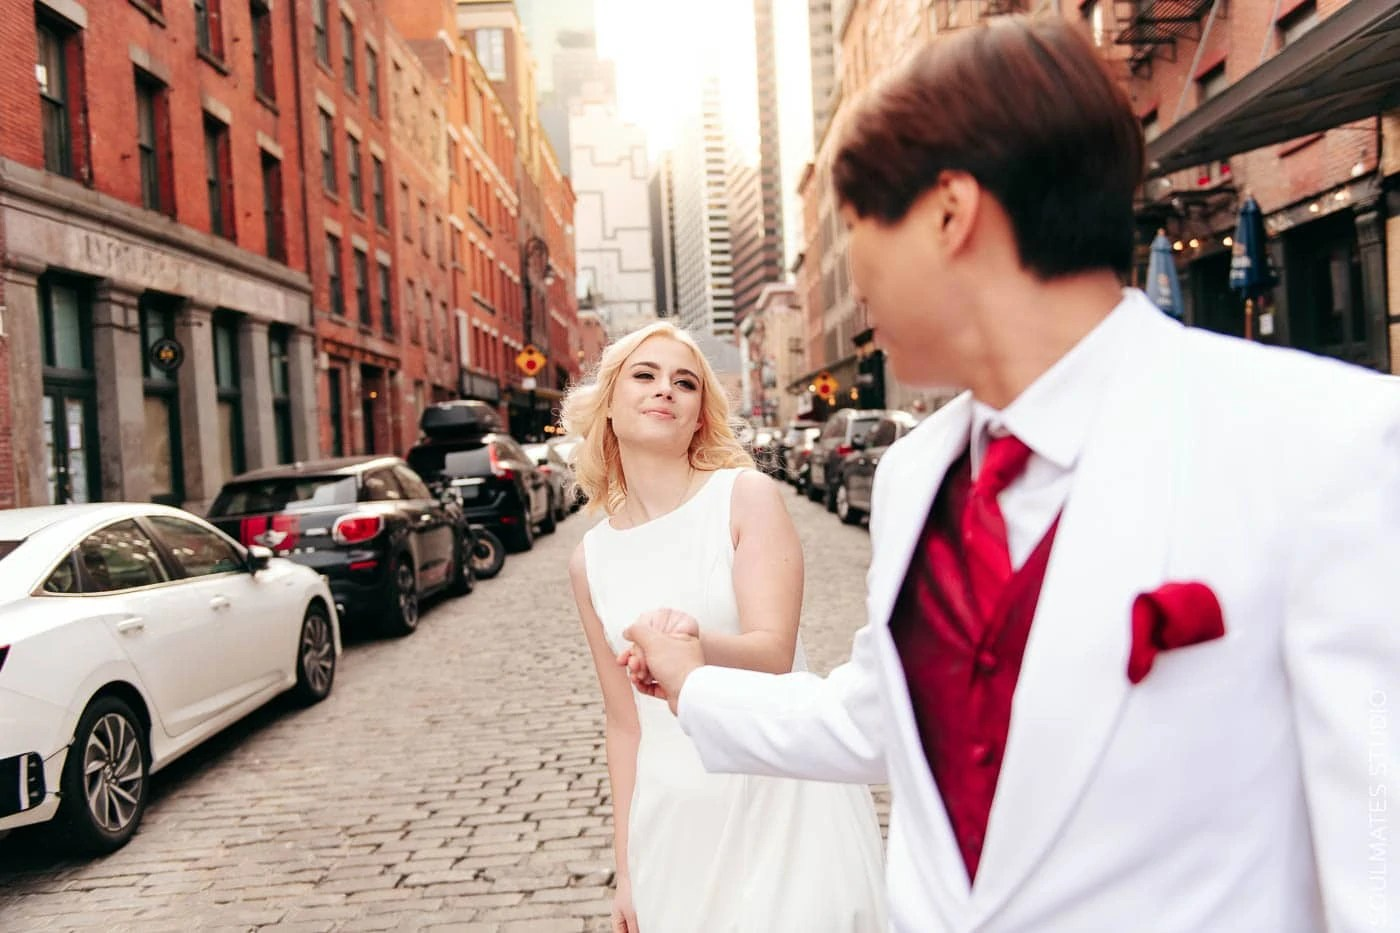 South Seaport Elopement wedding session